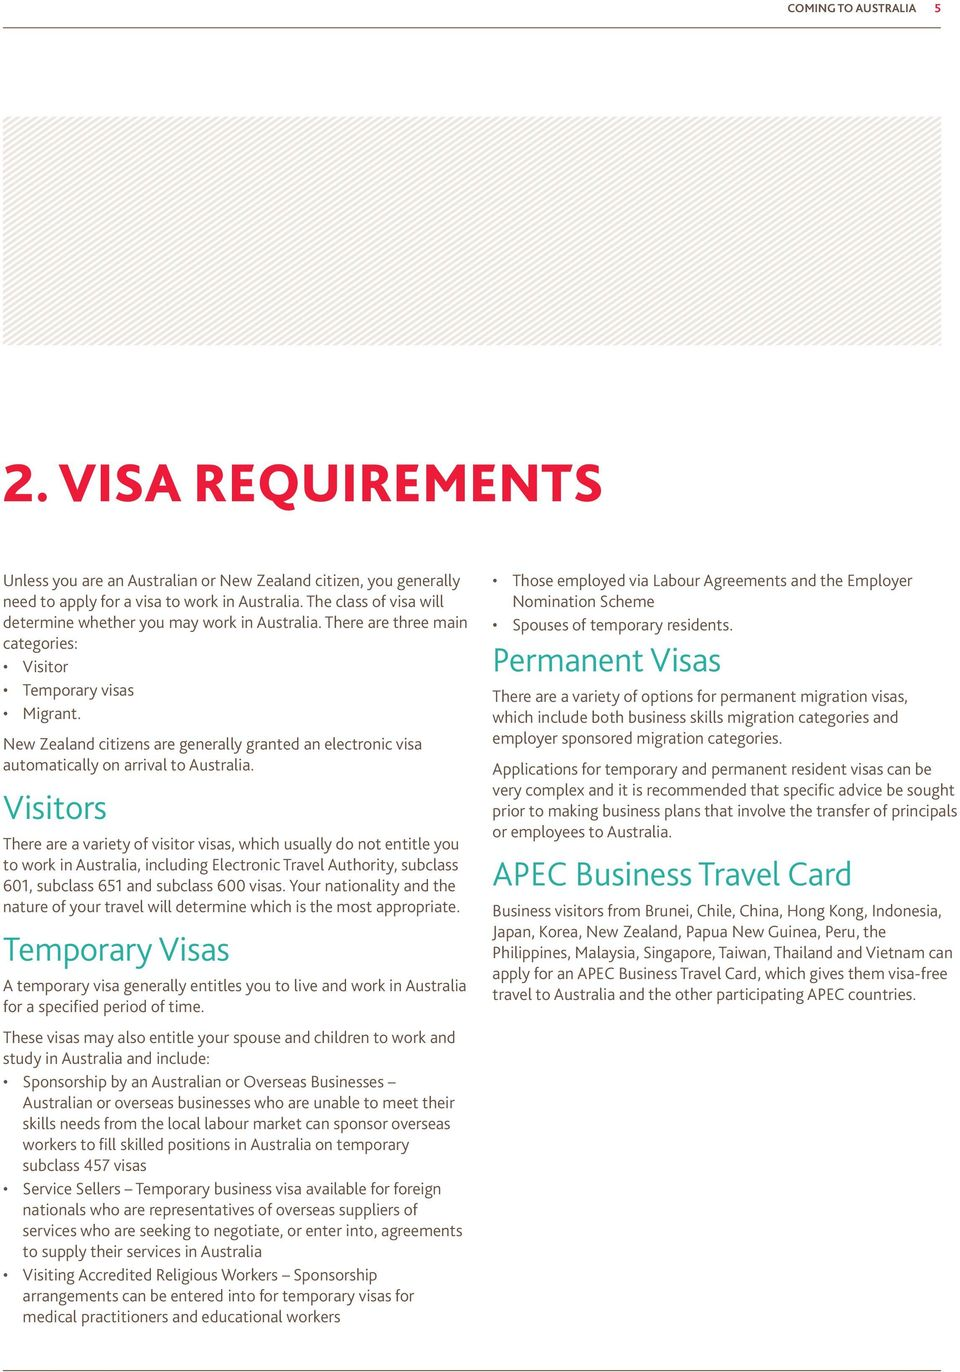 New Zealand citizens are generally granted an electronic visa automatically on arrival to Australia.